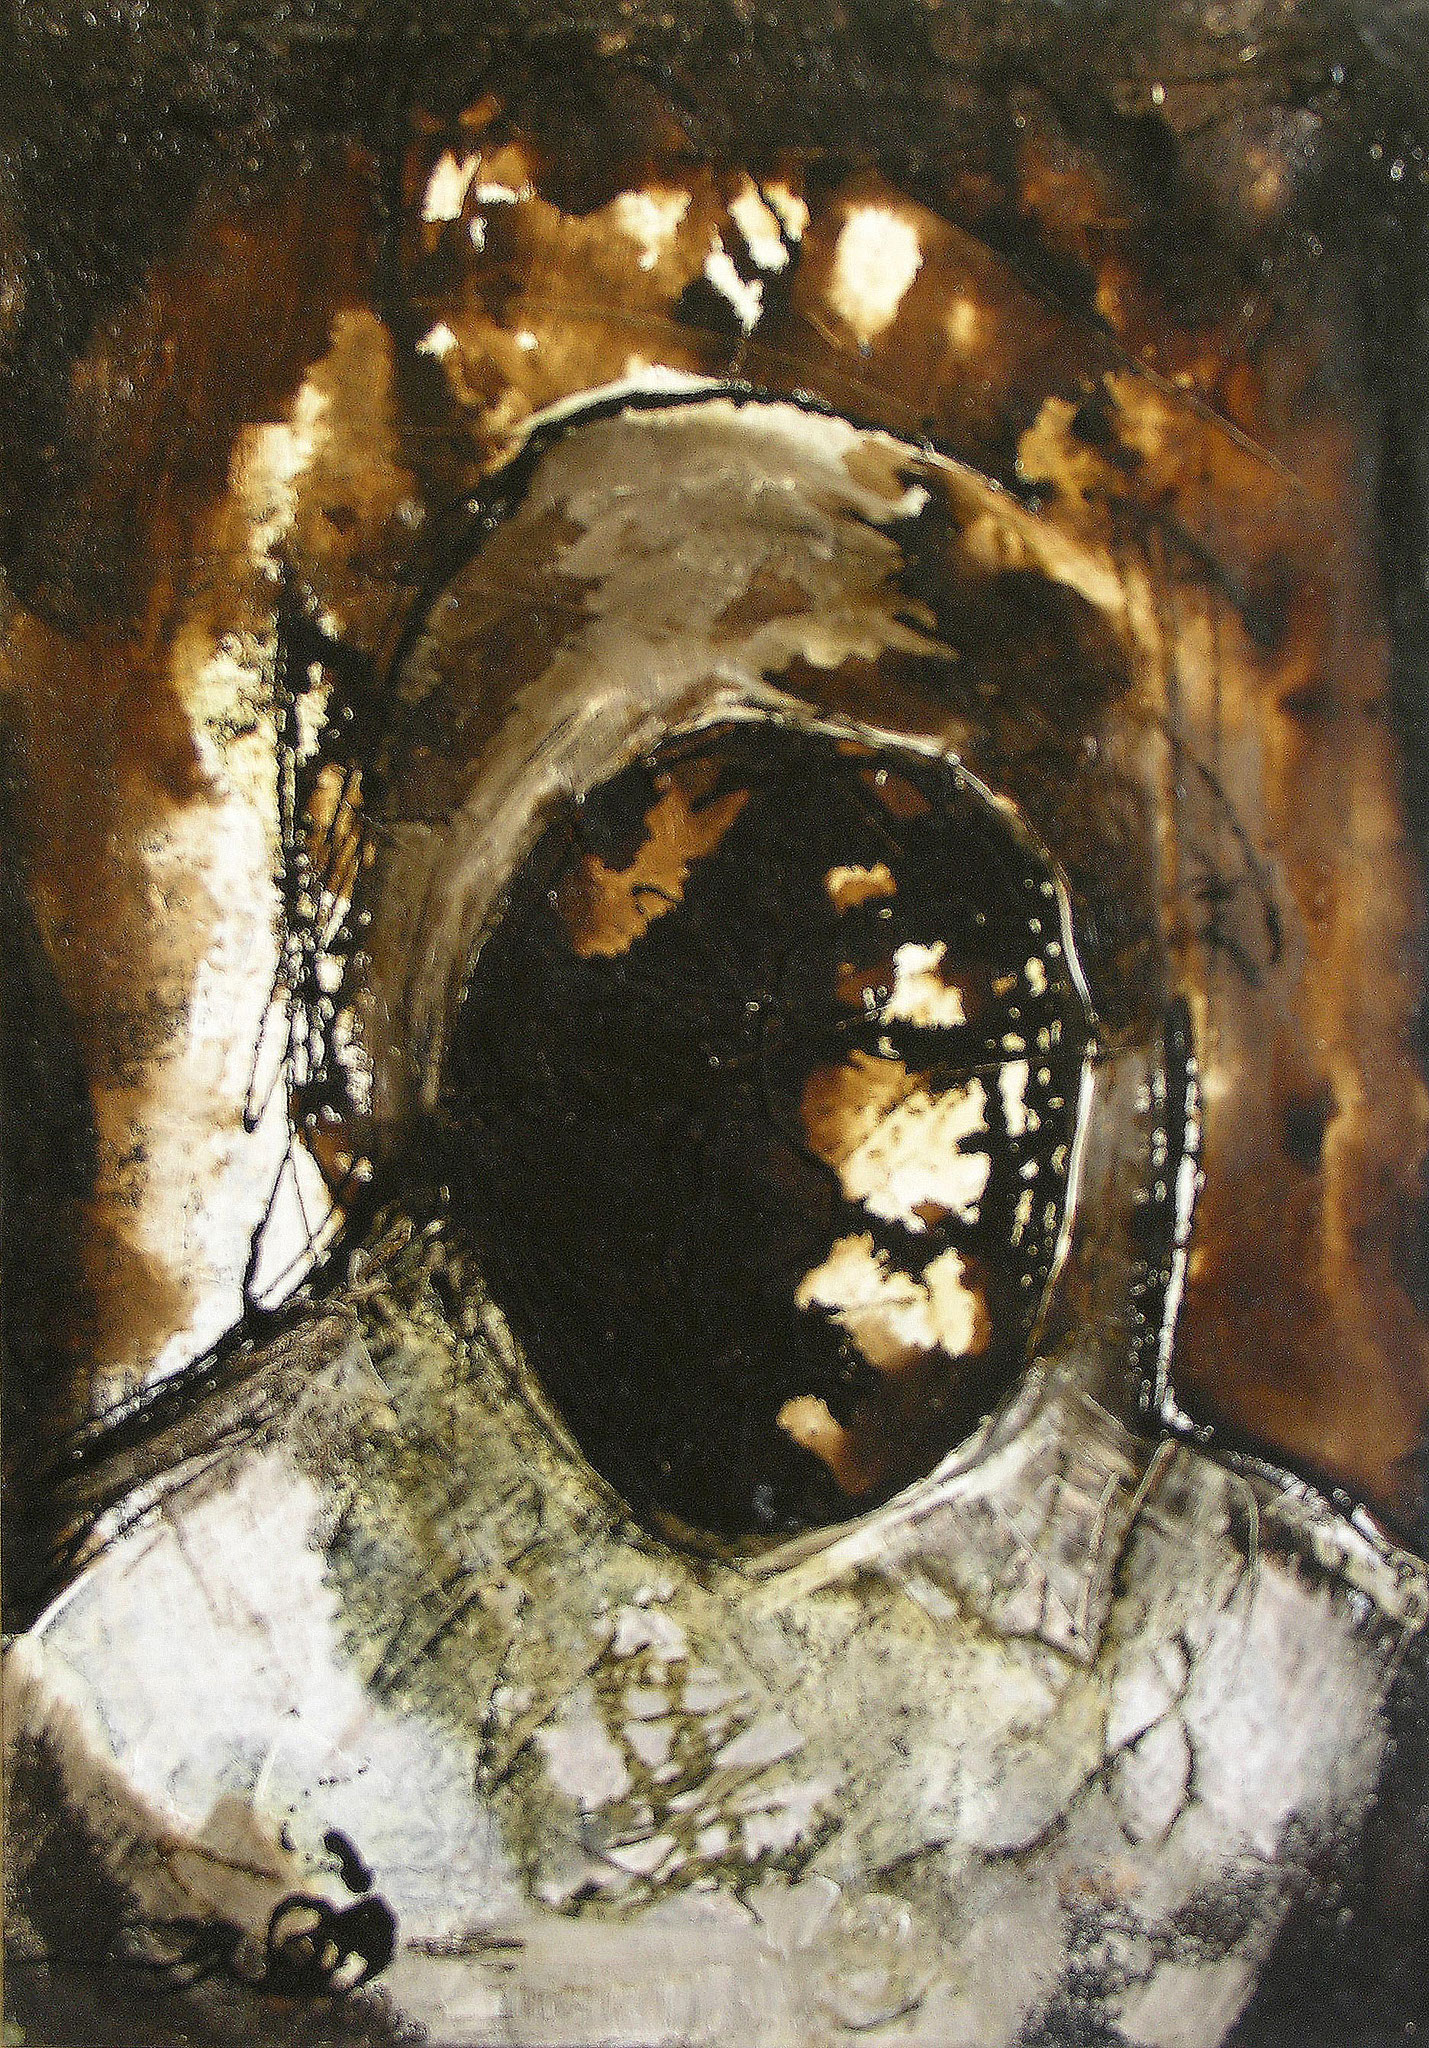 Woman, Acrylic and tar on canvas, 70 x 100 cm, 2000